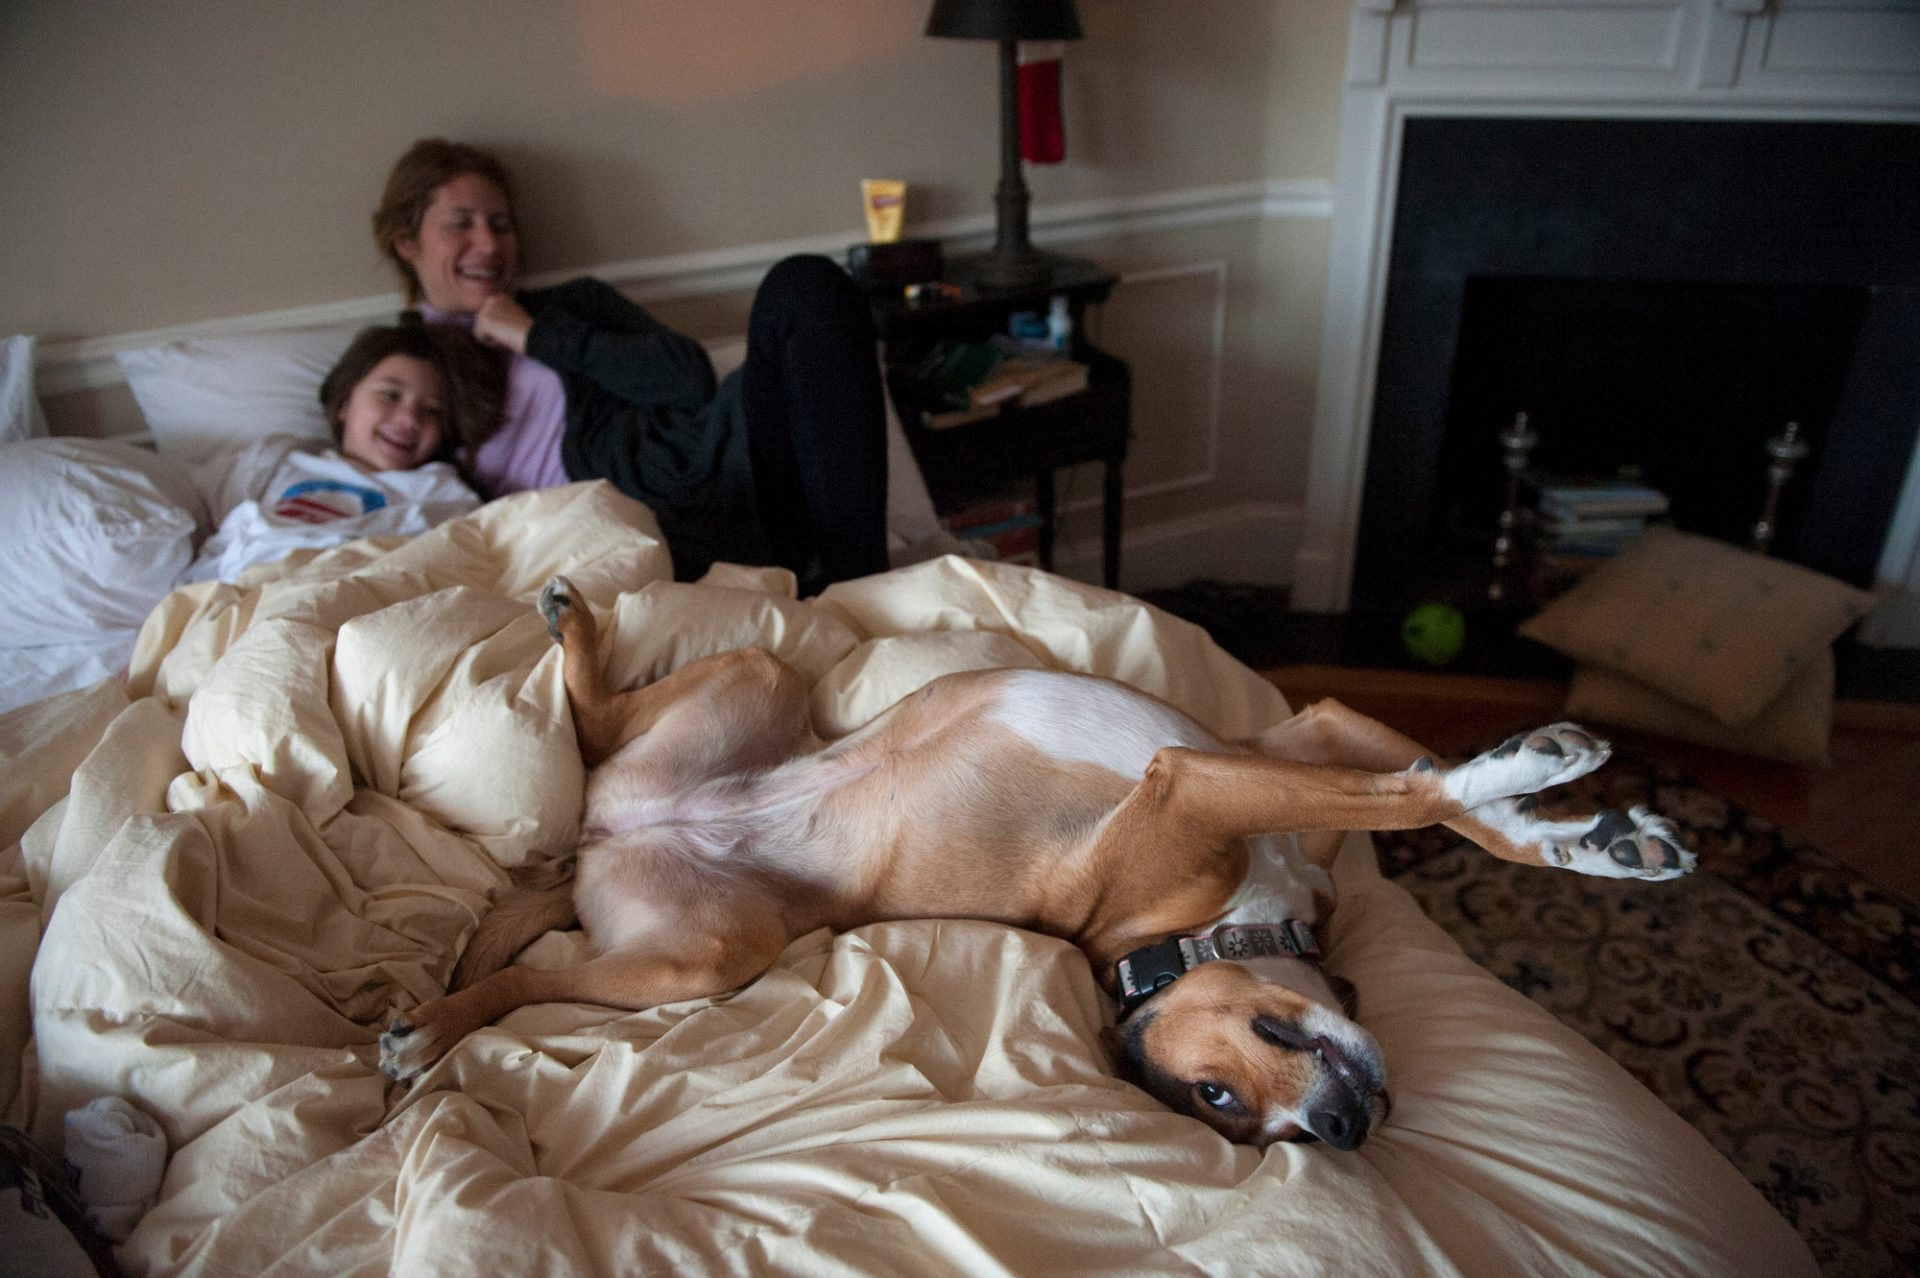 Photo: A dog stretches in bed in Washington, DC.